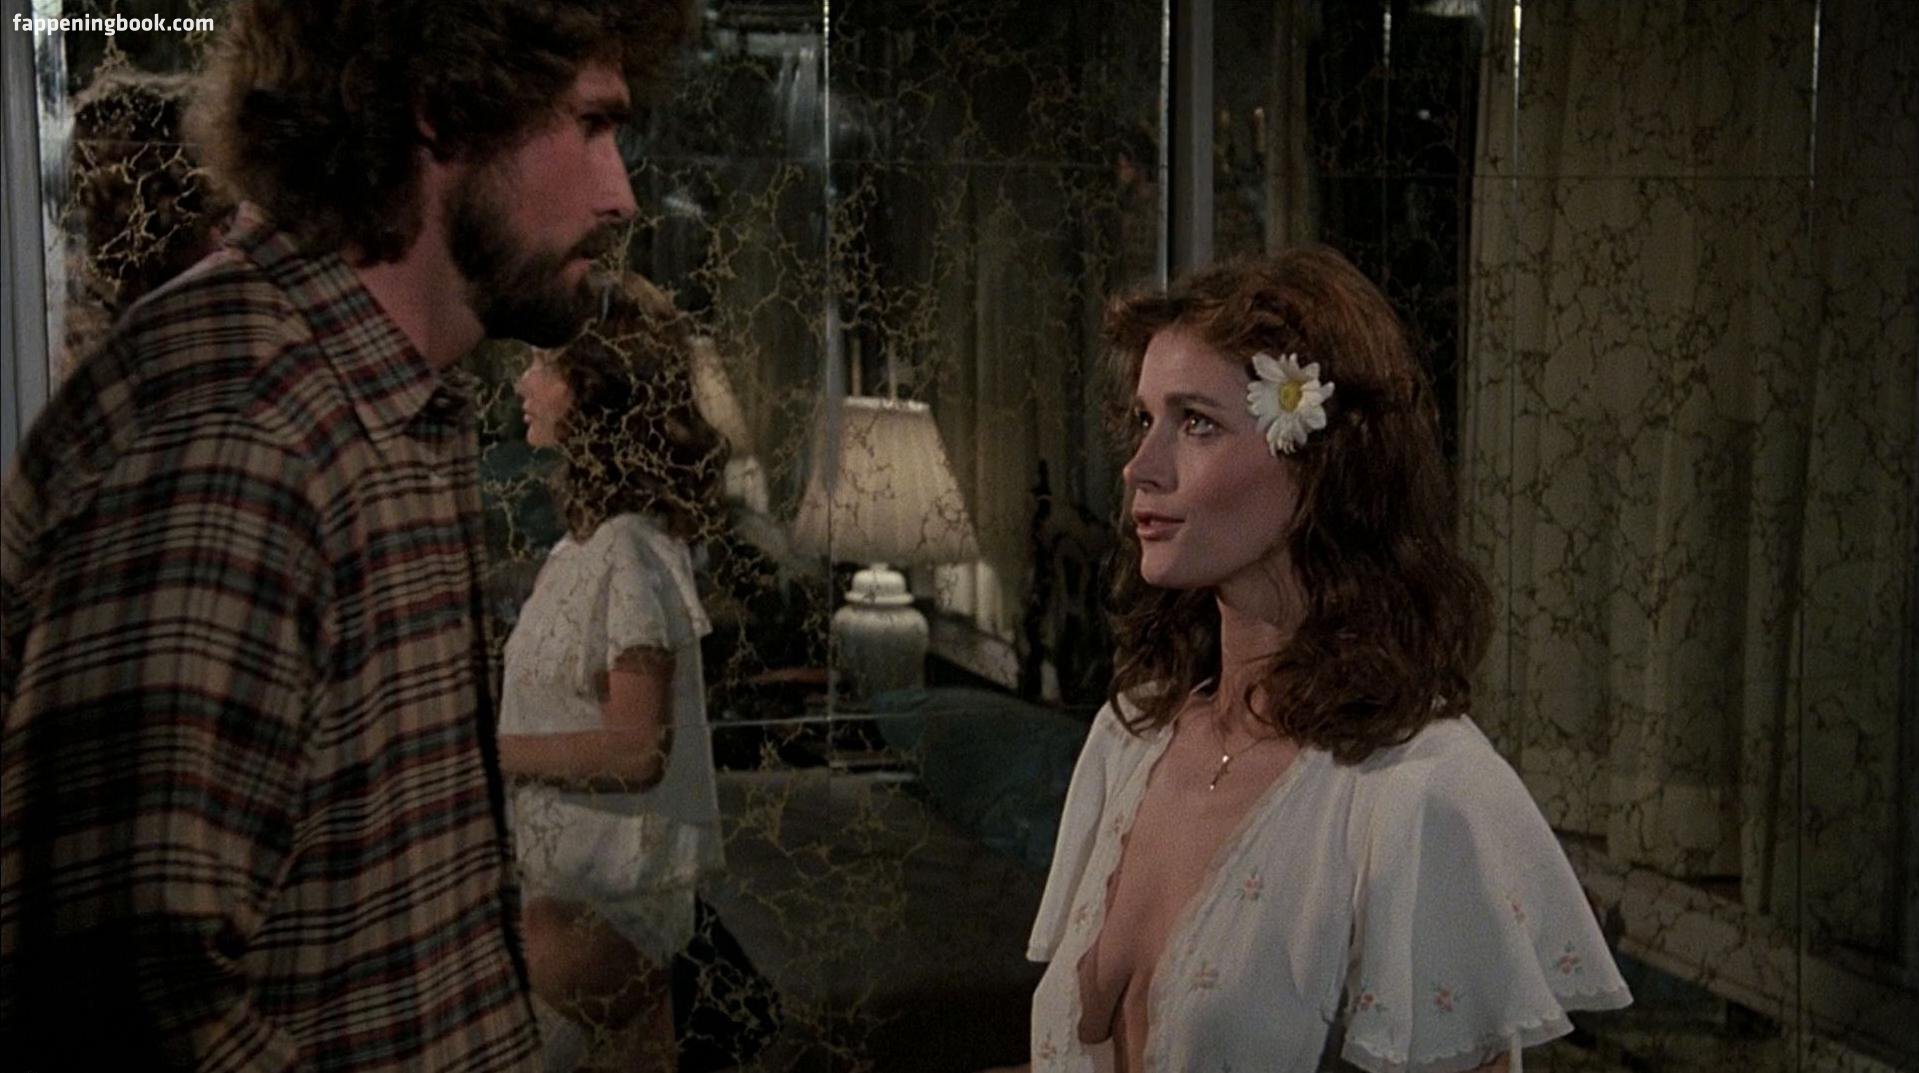 Angela Kinsey Nude Scene margot kidder nude, sexy, the fappening, uncensored - photo